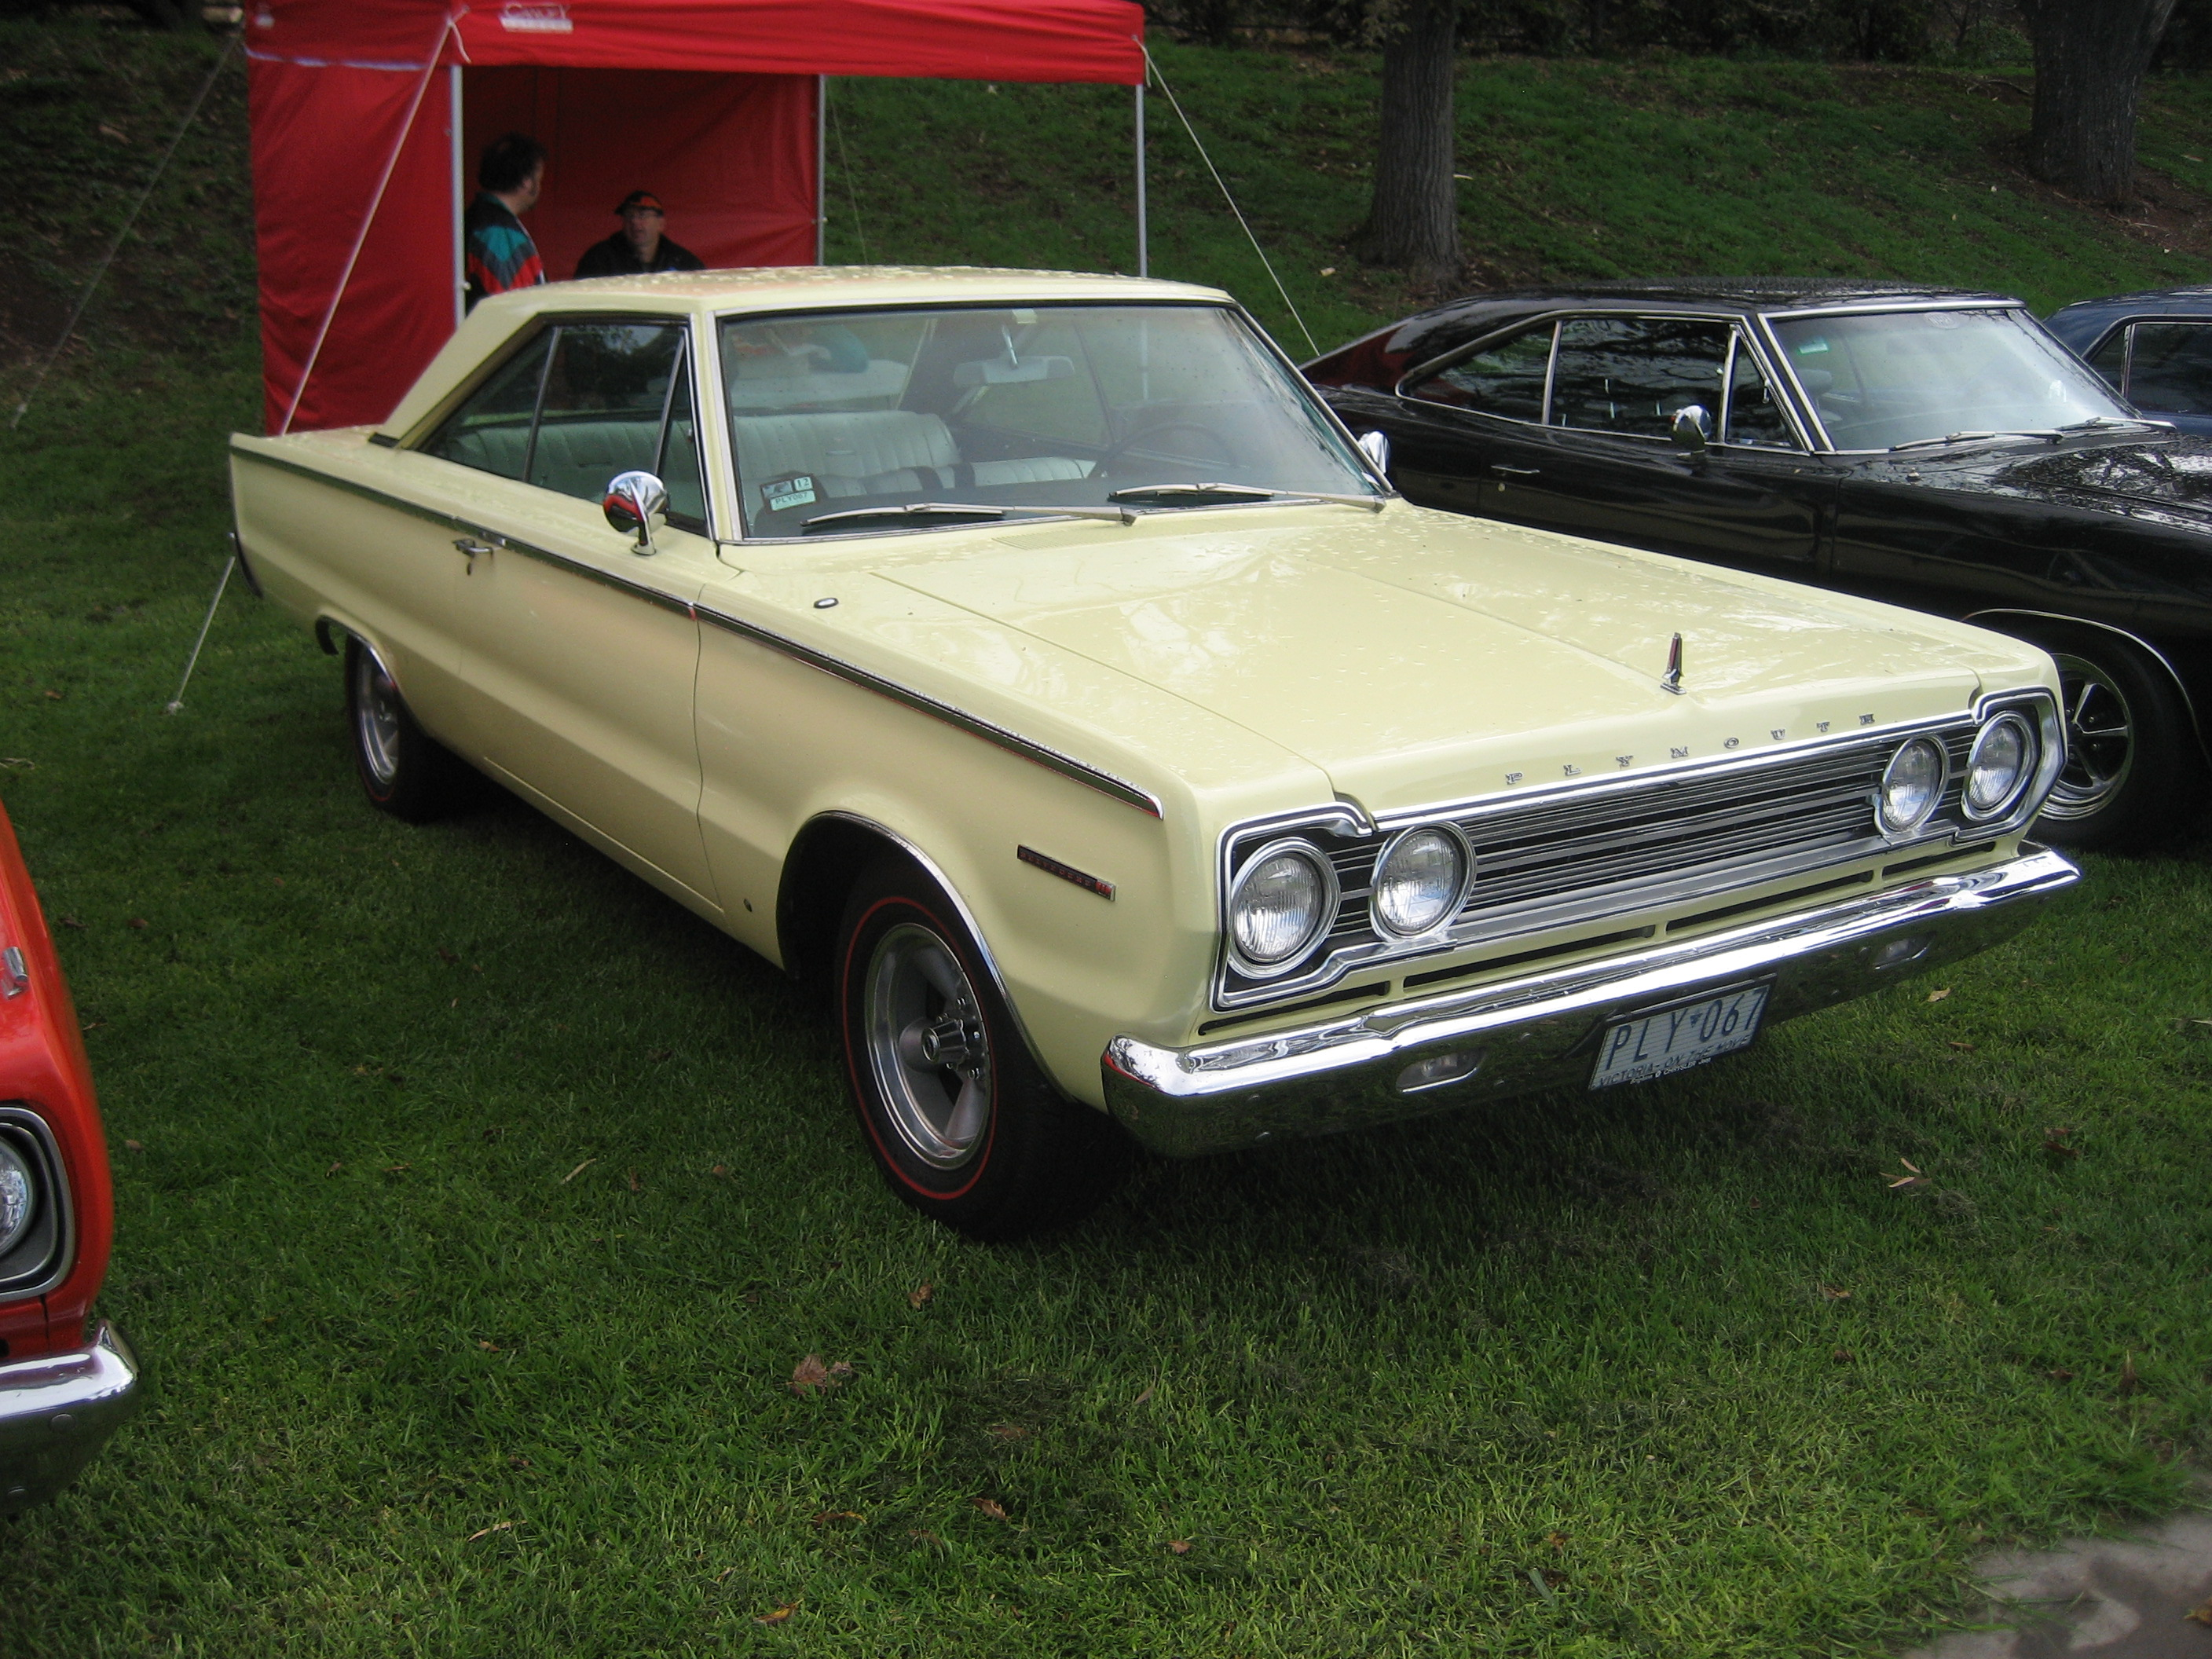 2 Door Convertible >> File:1967 Plymouth Belvedere 2 door Hardtop.jpg - Wikimedia Commons